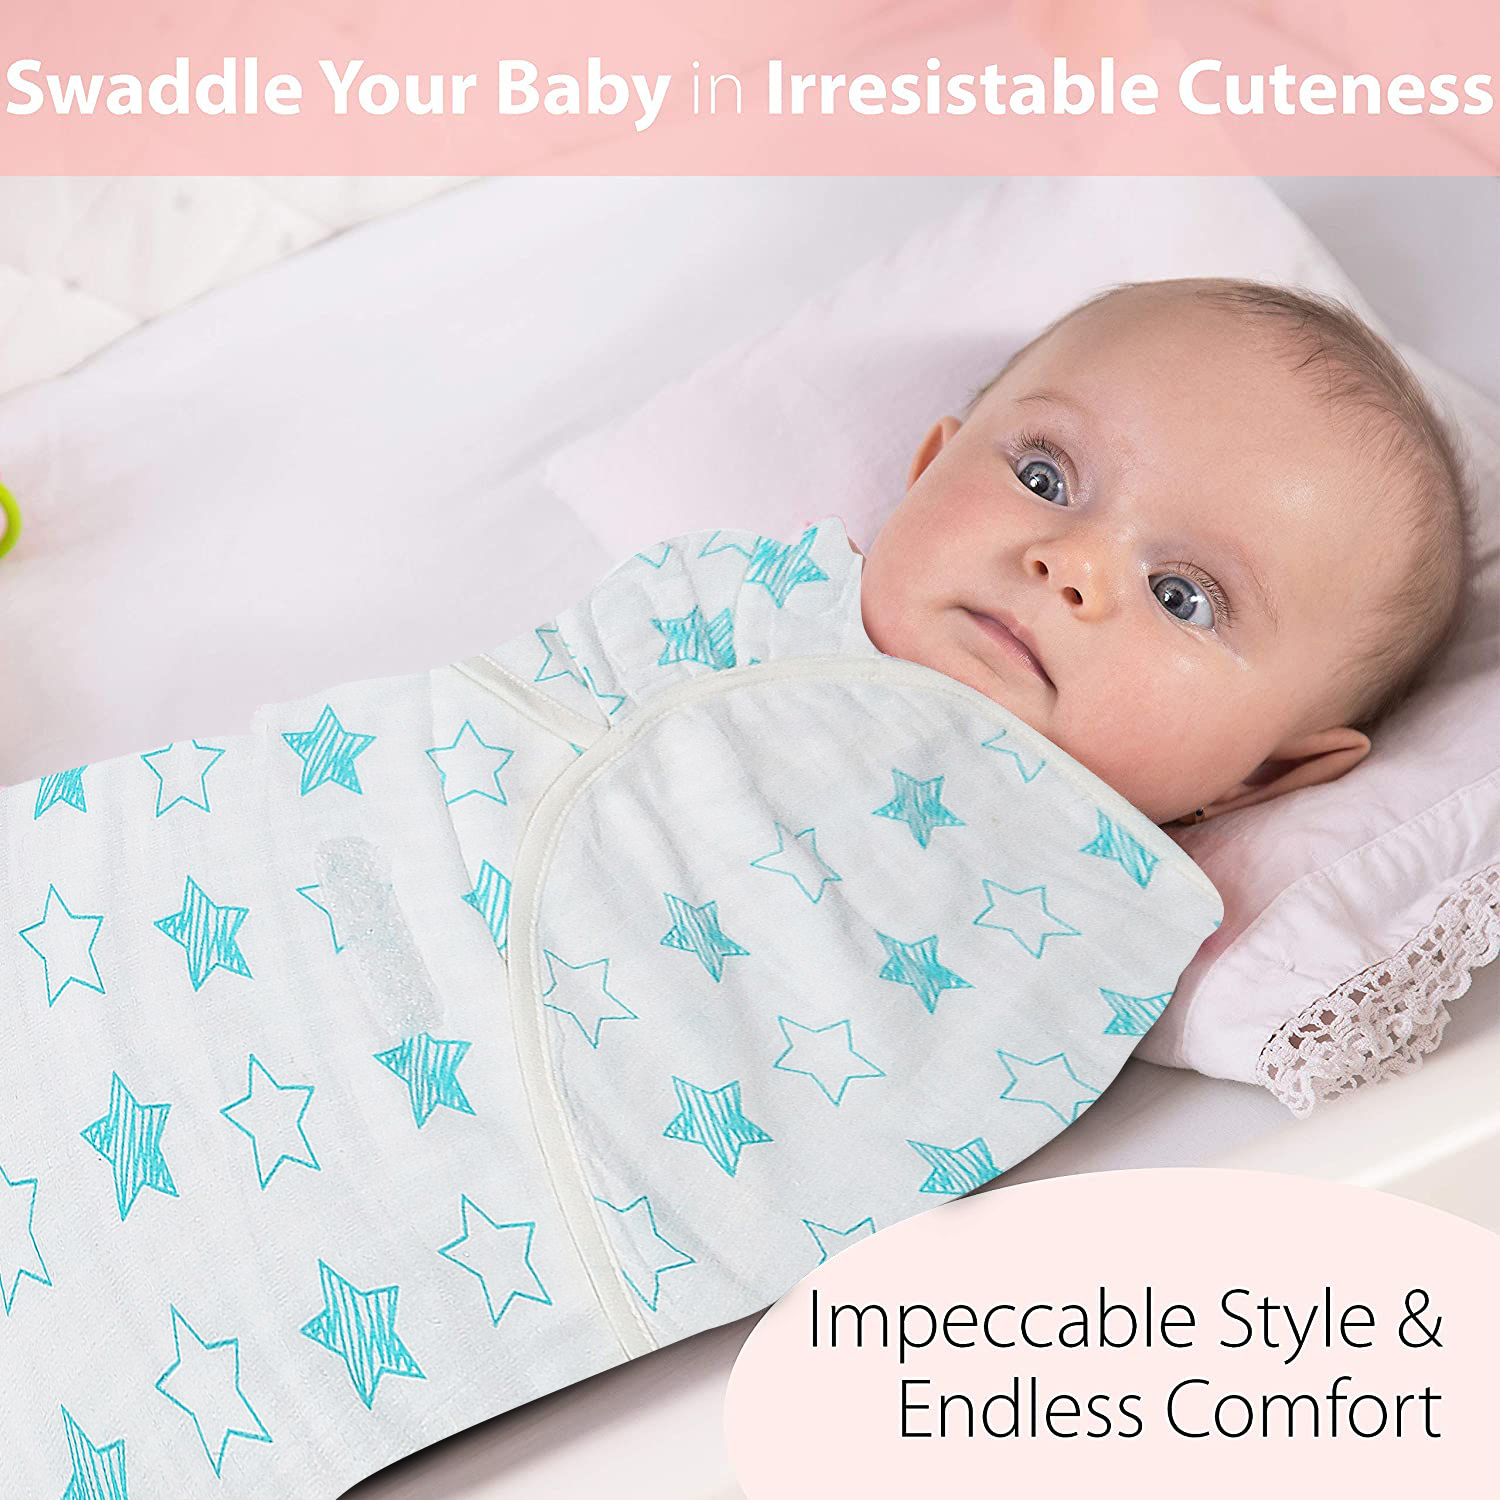 Baby swaddler combo made in soft muslin fabric